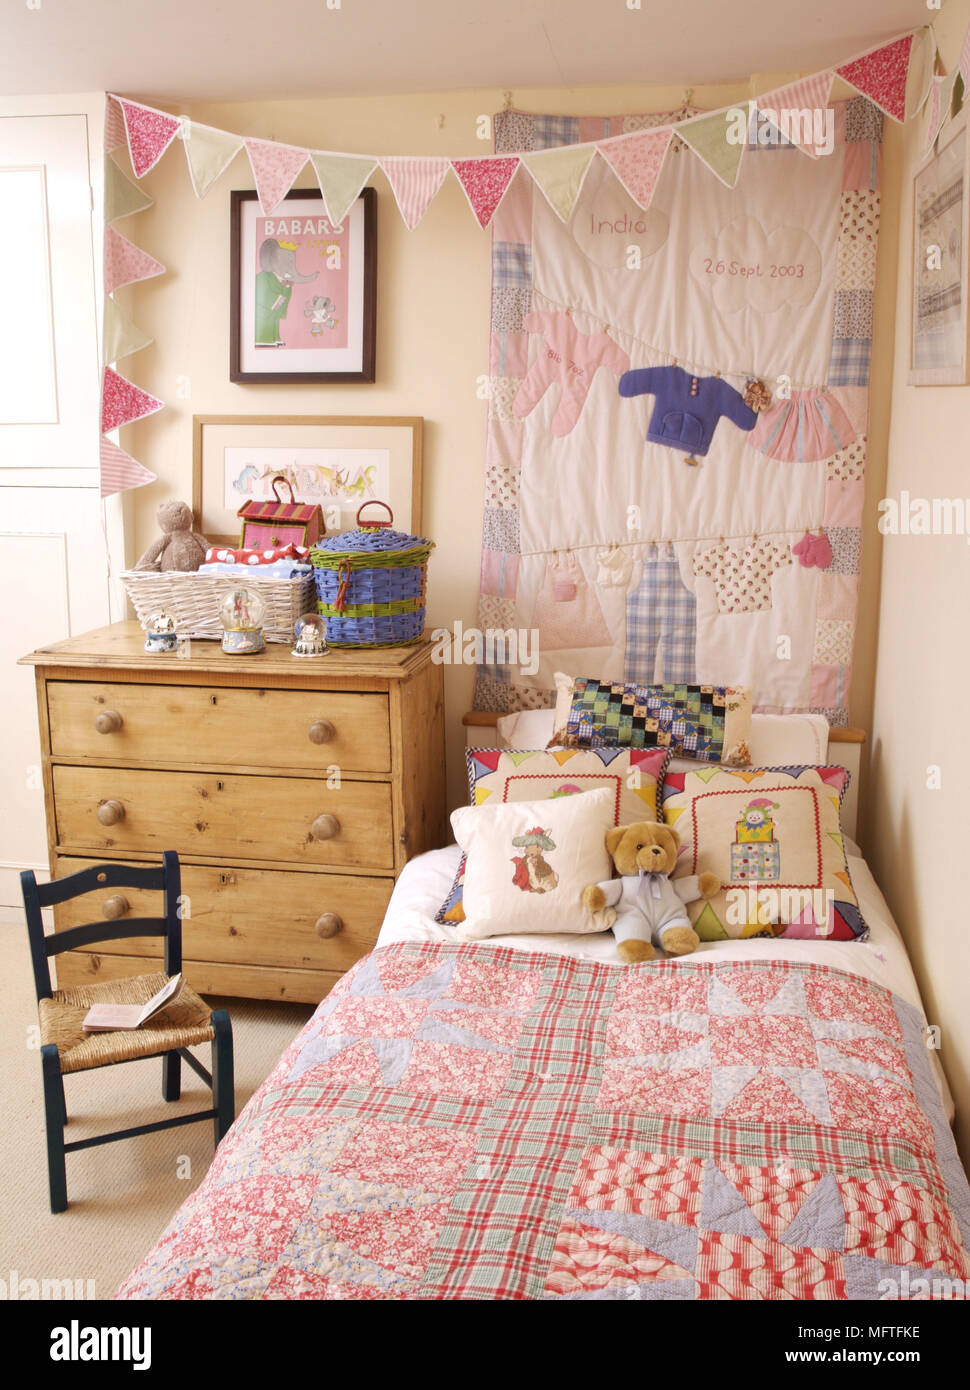 Pine chest of drawers next to single bed in childs bedroom - Stock Image